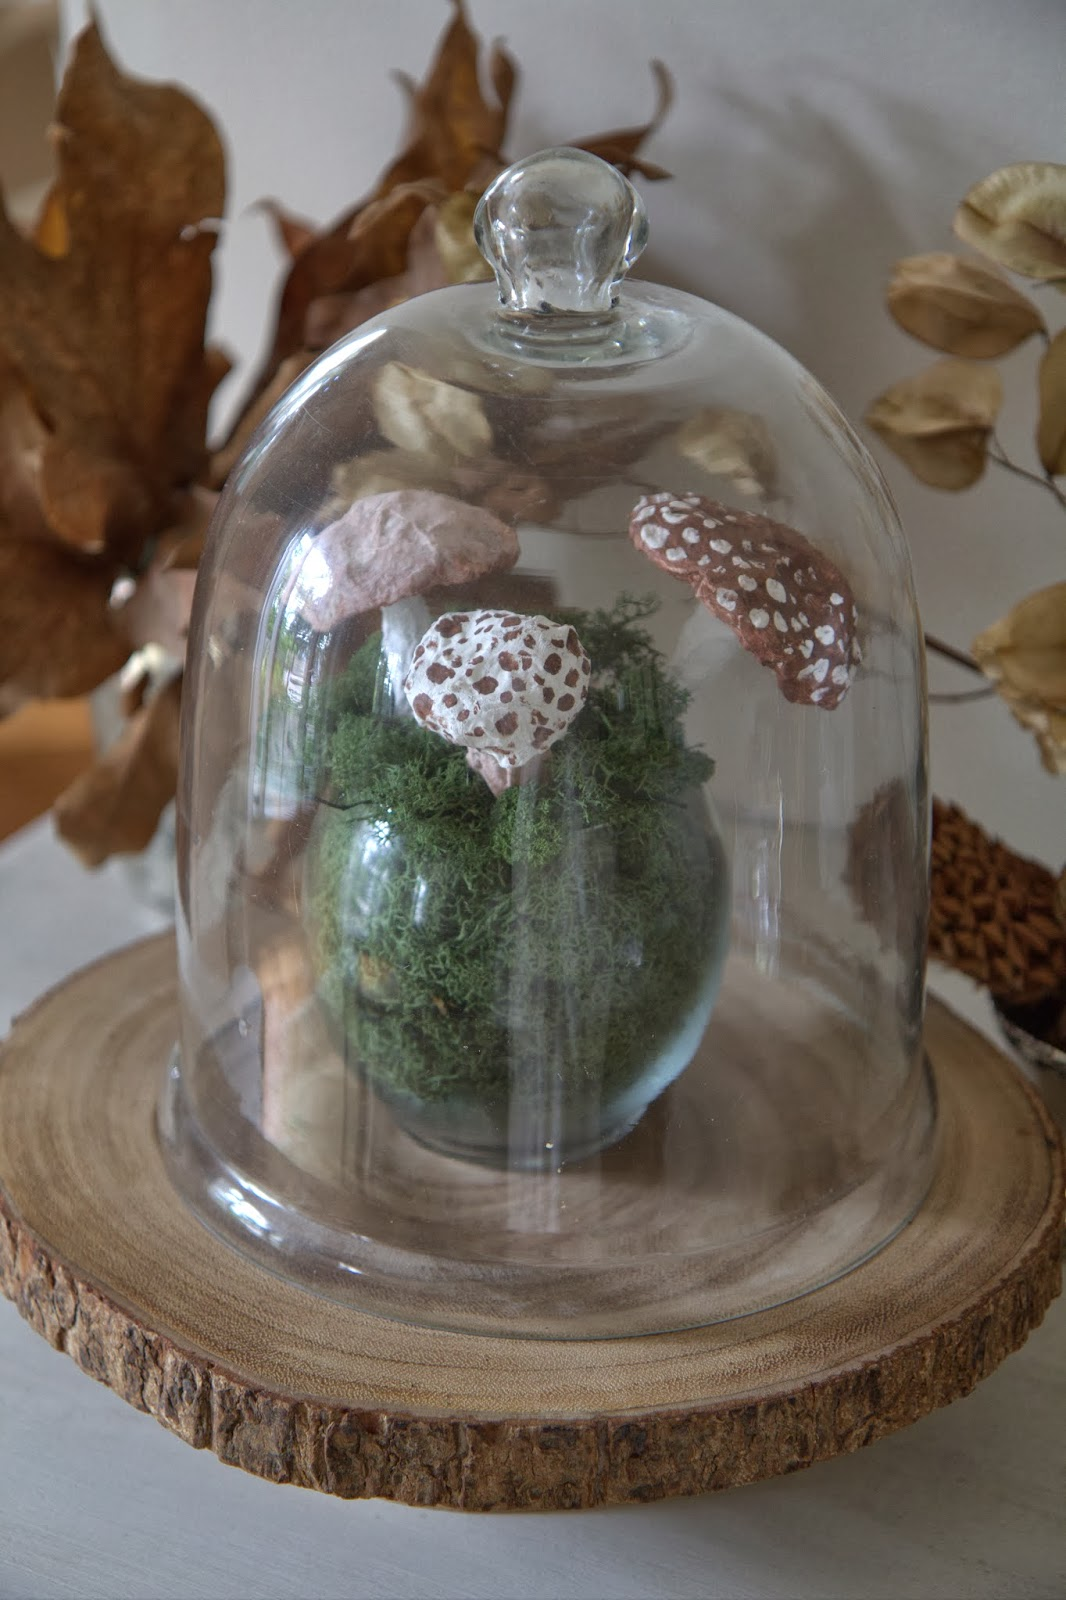 Paper Mache Mushrooms in Moss 8